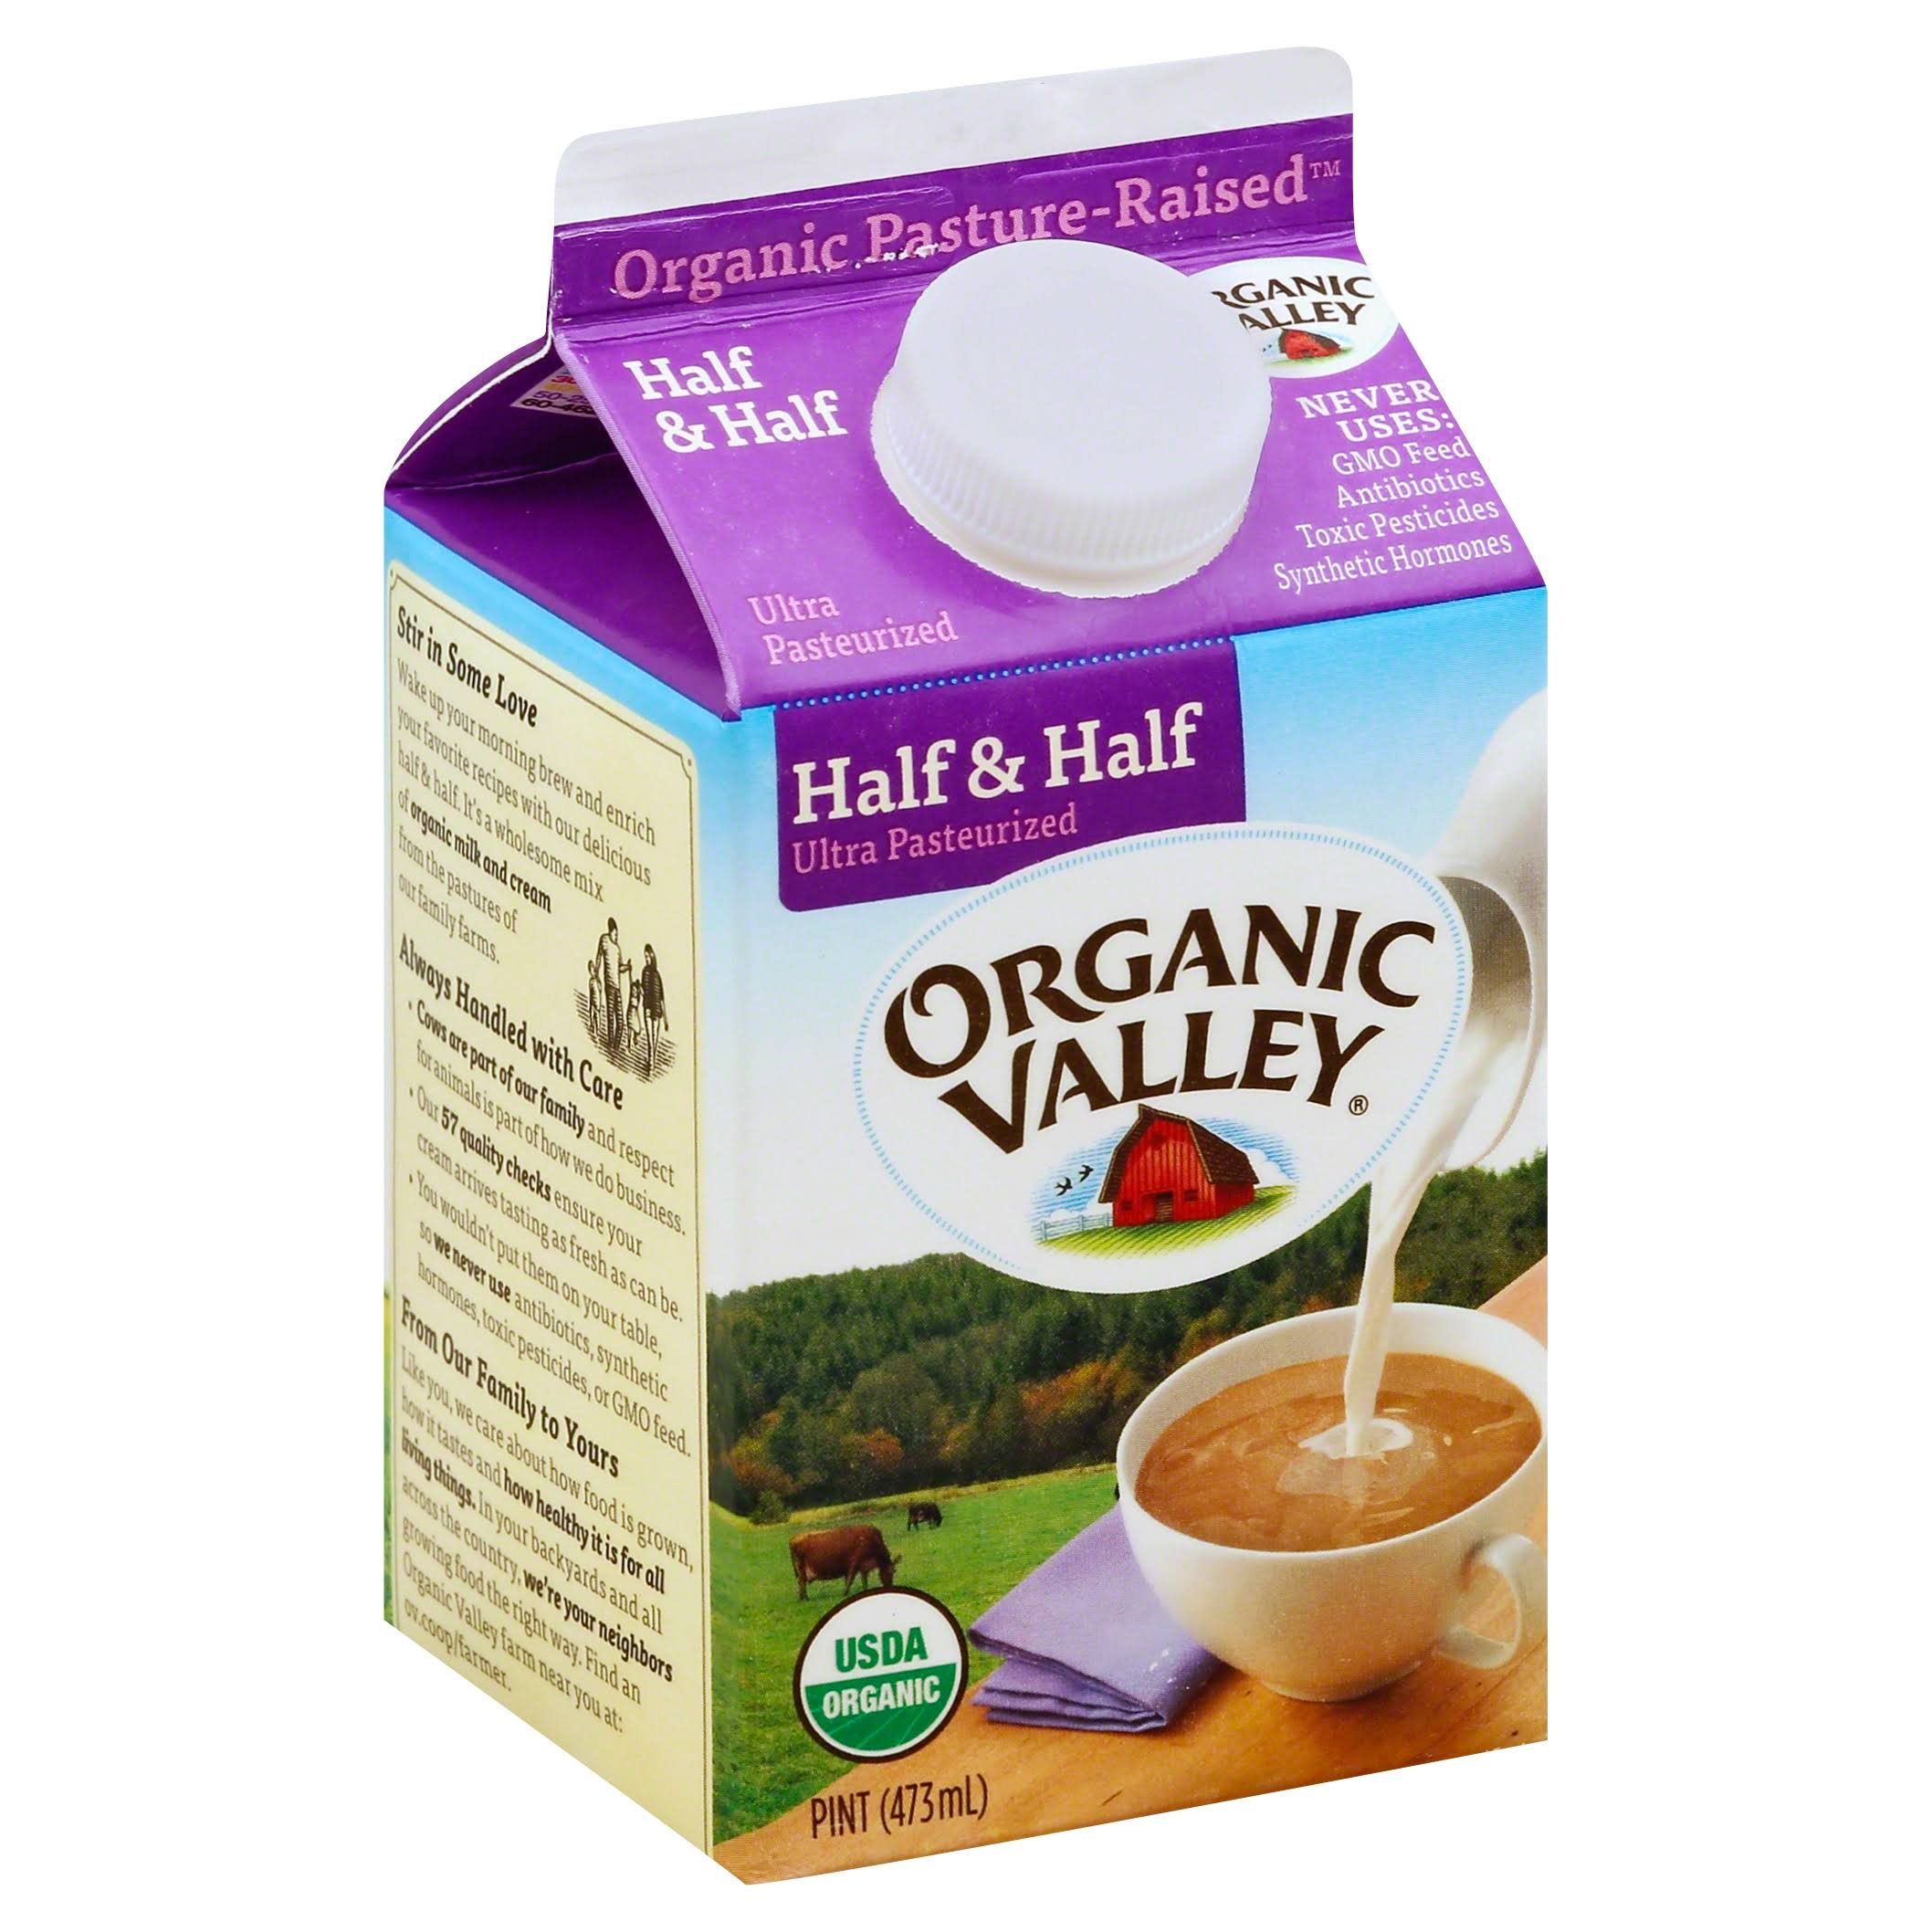 Organic Valley Half & Half Ultra Pasteurized Milk